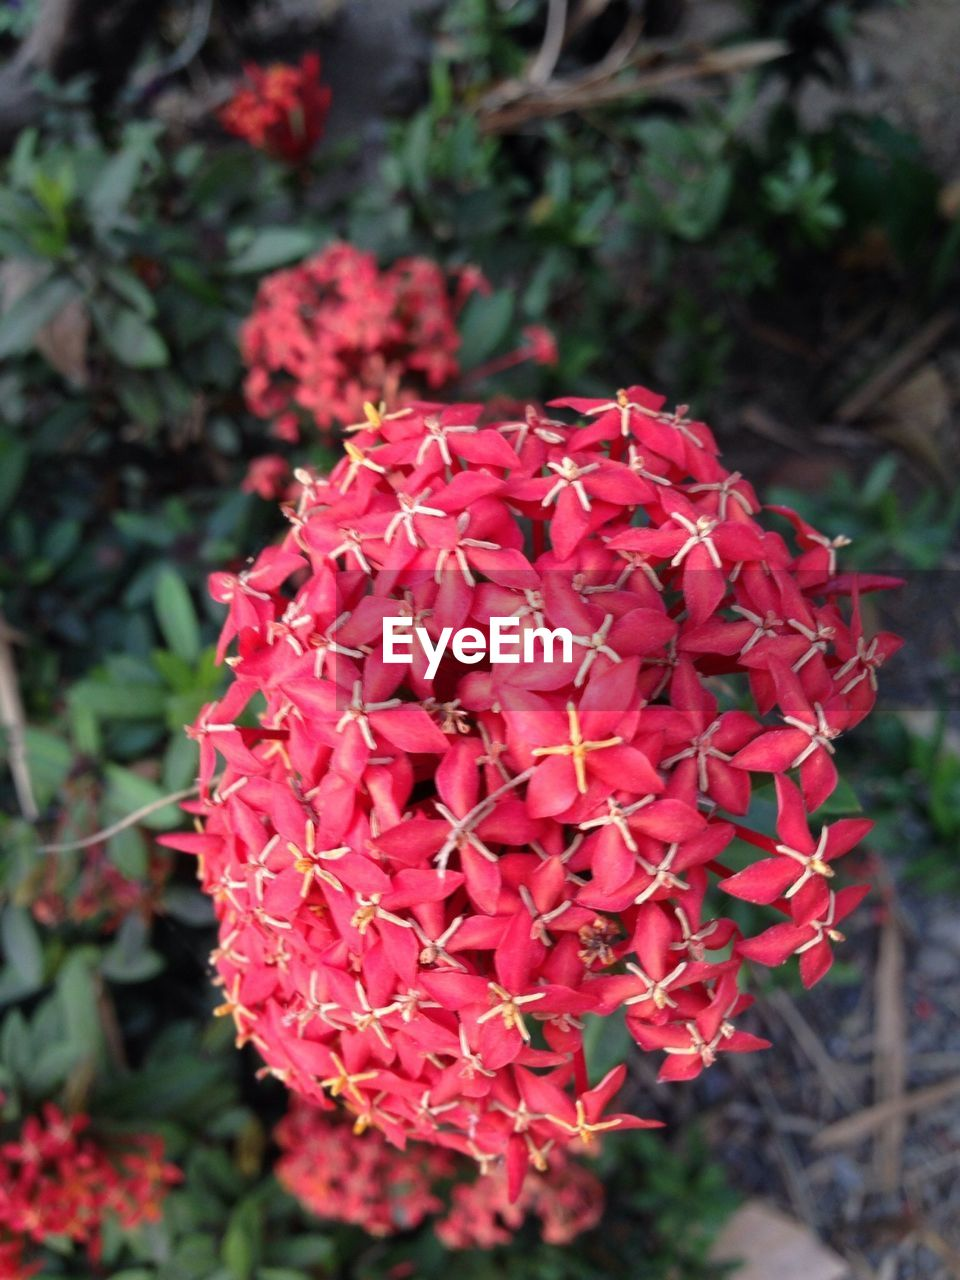 flower, petal, beauty in nature, growth, nature, fragility, flower head, freshness, red, ixora, blooming, plant, day, outdoors, focus on foreground, no people, close-up